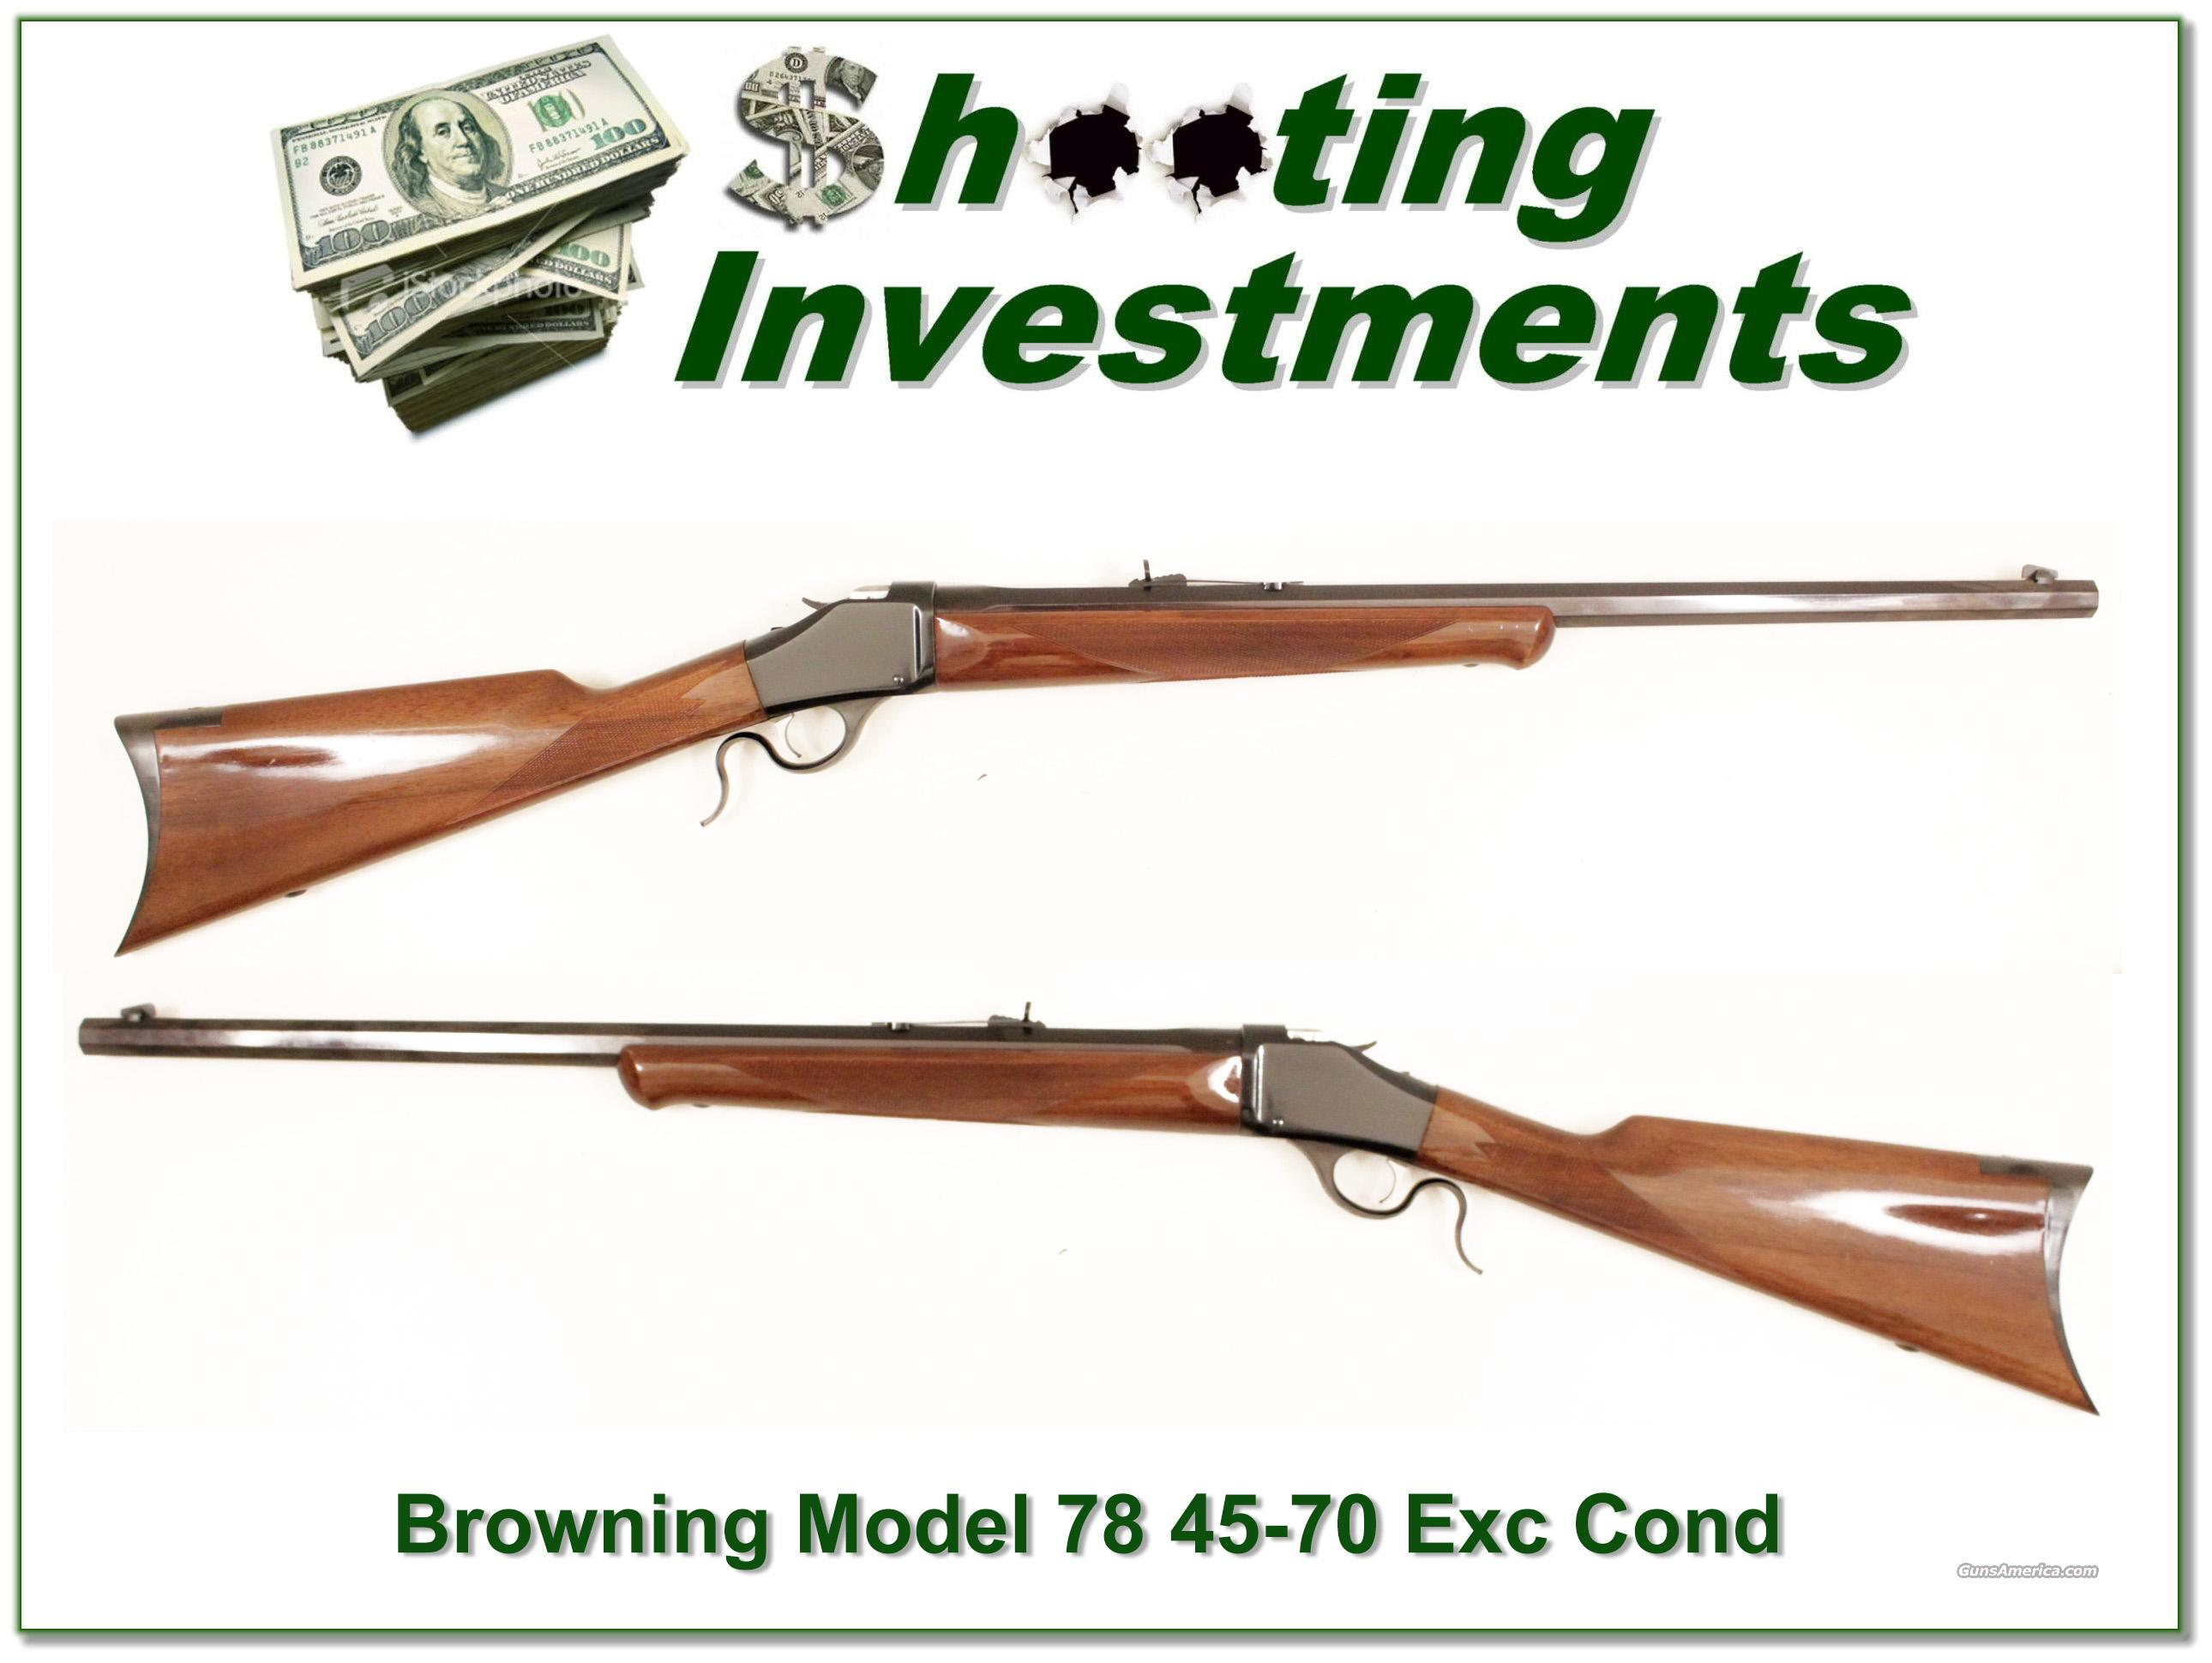 Browning Model 78 45-70 Exc Cond  Guns > Rifles > Browning Rifles > Singe Shot